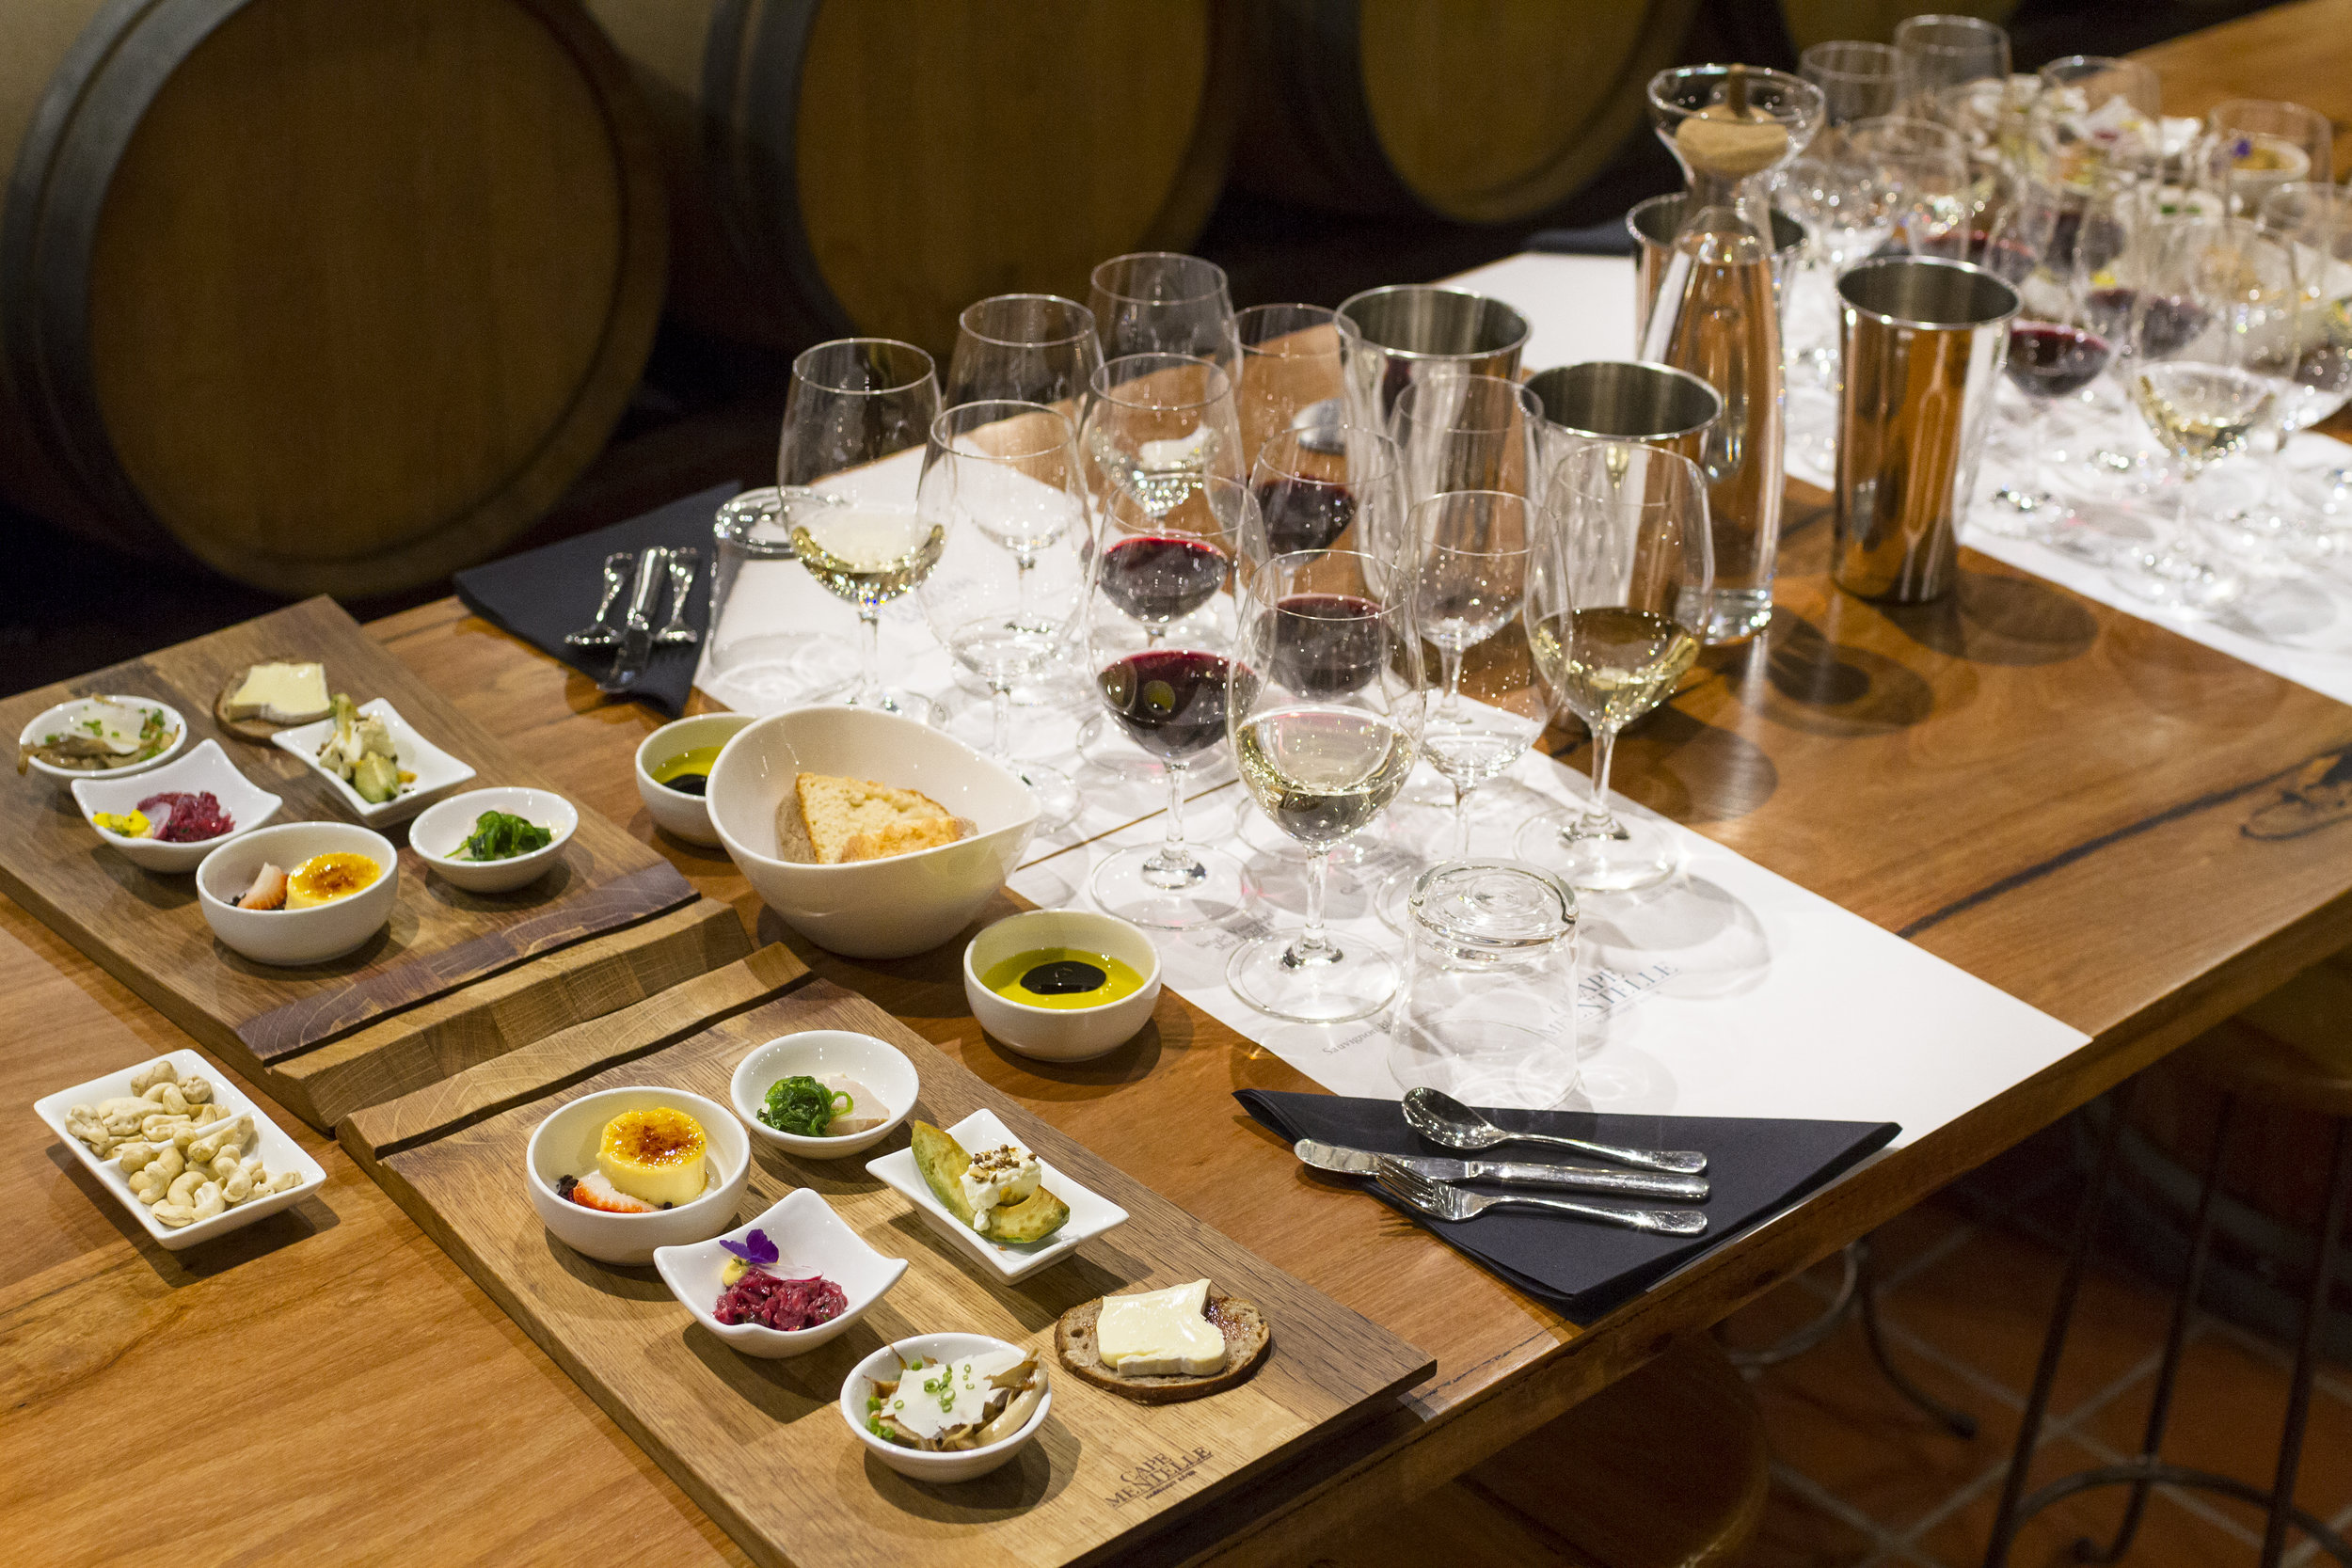 An image showing the table setting for a Cape Mentelle wine & food paired degustation experience!